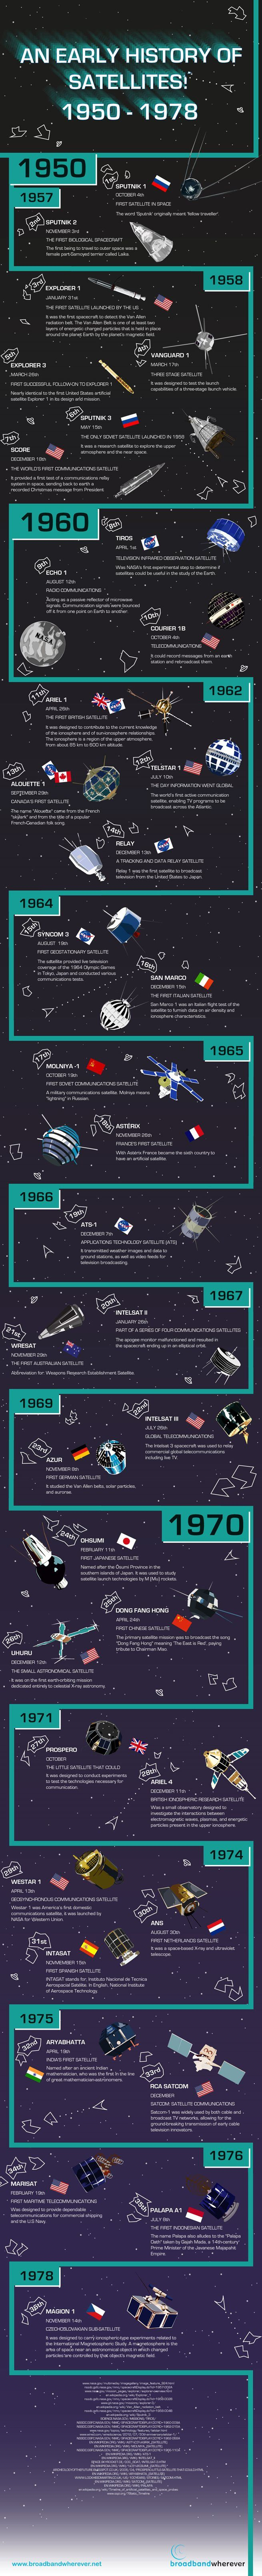 """An Early History of Satellites."" (Credit: Broadband Wherever) It's not often that one associates a satellite with French folk songs, but this infographic does that and more. On it you will find the major launches of the early space age — from the Soviet Union's Sputnik to the Czechoslovakian Magion 1 — showing how satellites quickly evolved between 1957 and 1978."